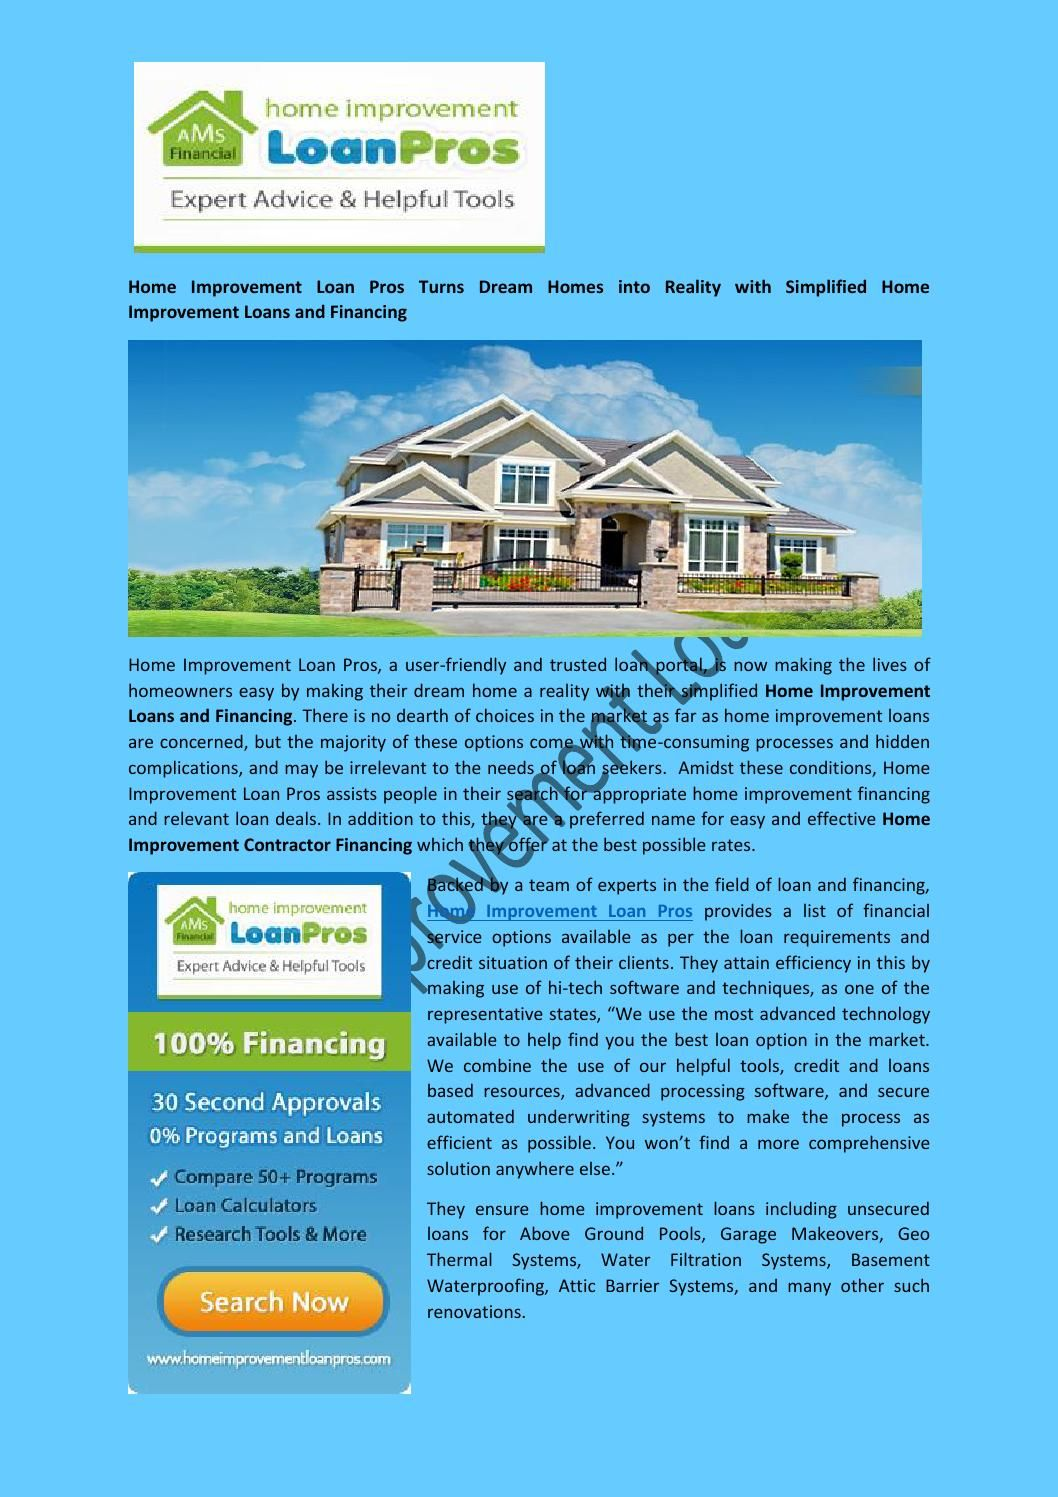 Home Improvement Loan Pros Turns Dream Homes Into Reality With Simplified Home Improvement Home Improvement Loans Home Improvement Financing Home Improvement